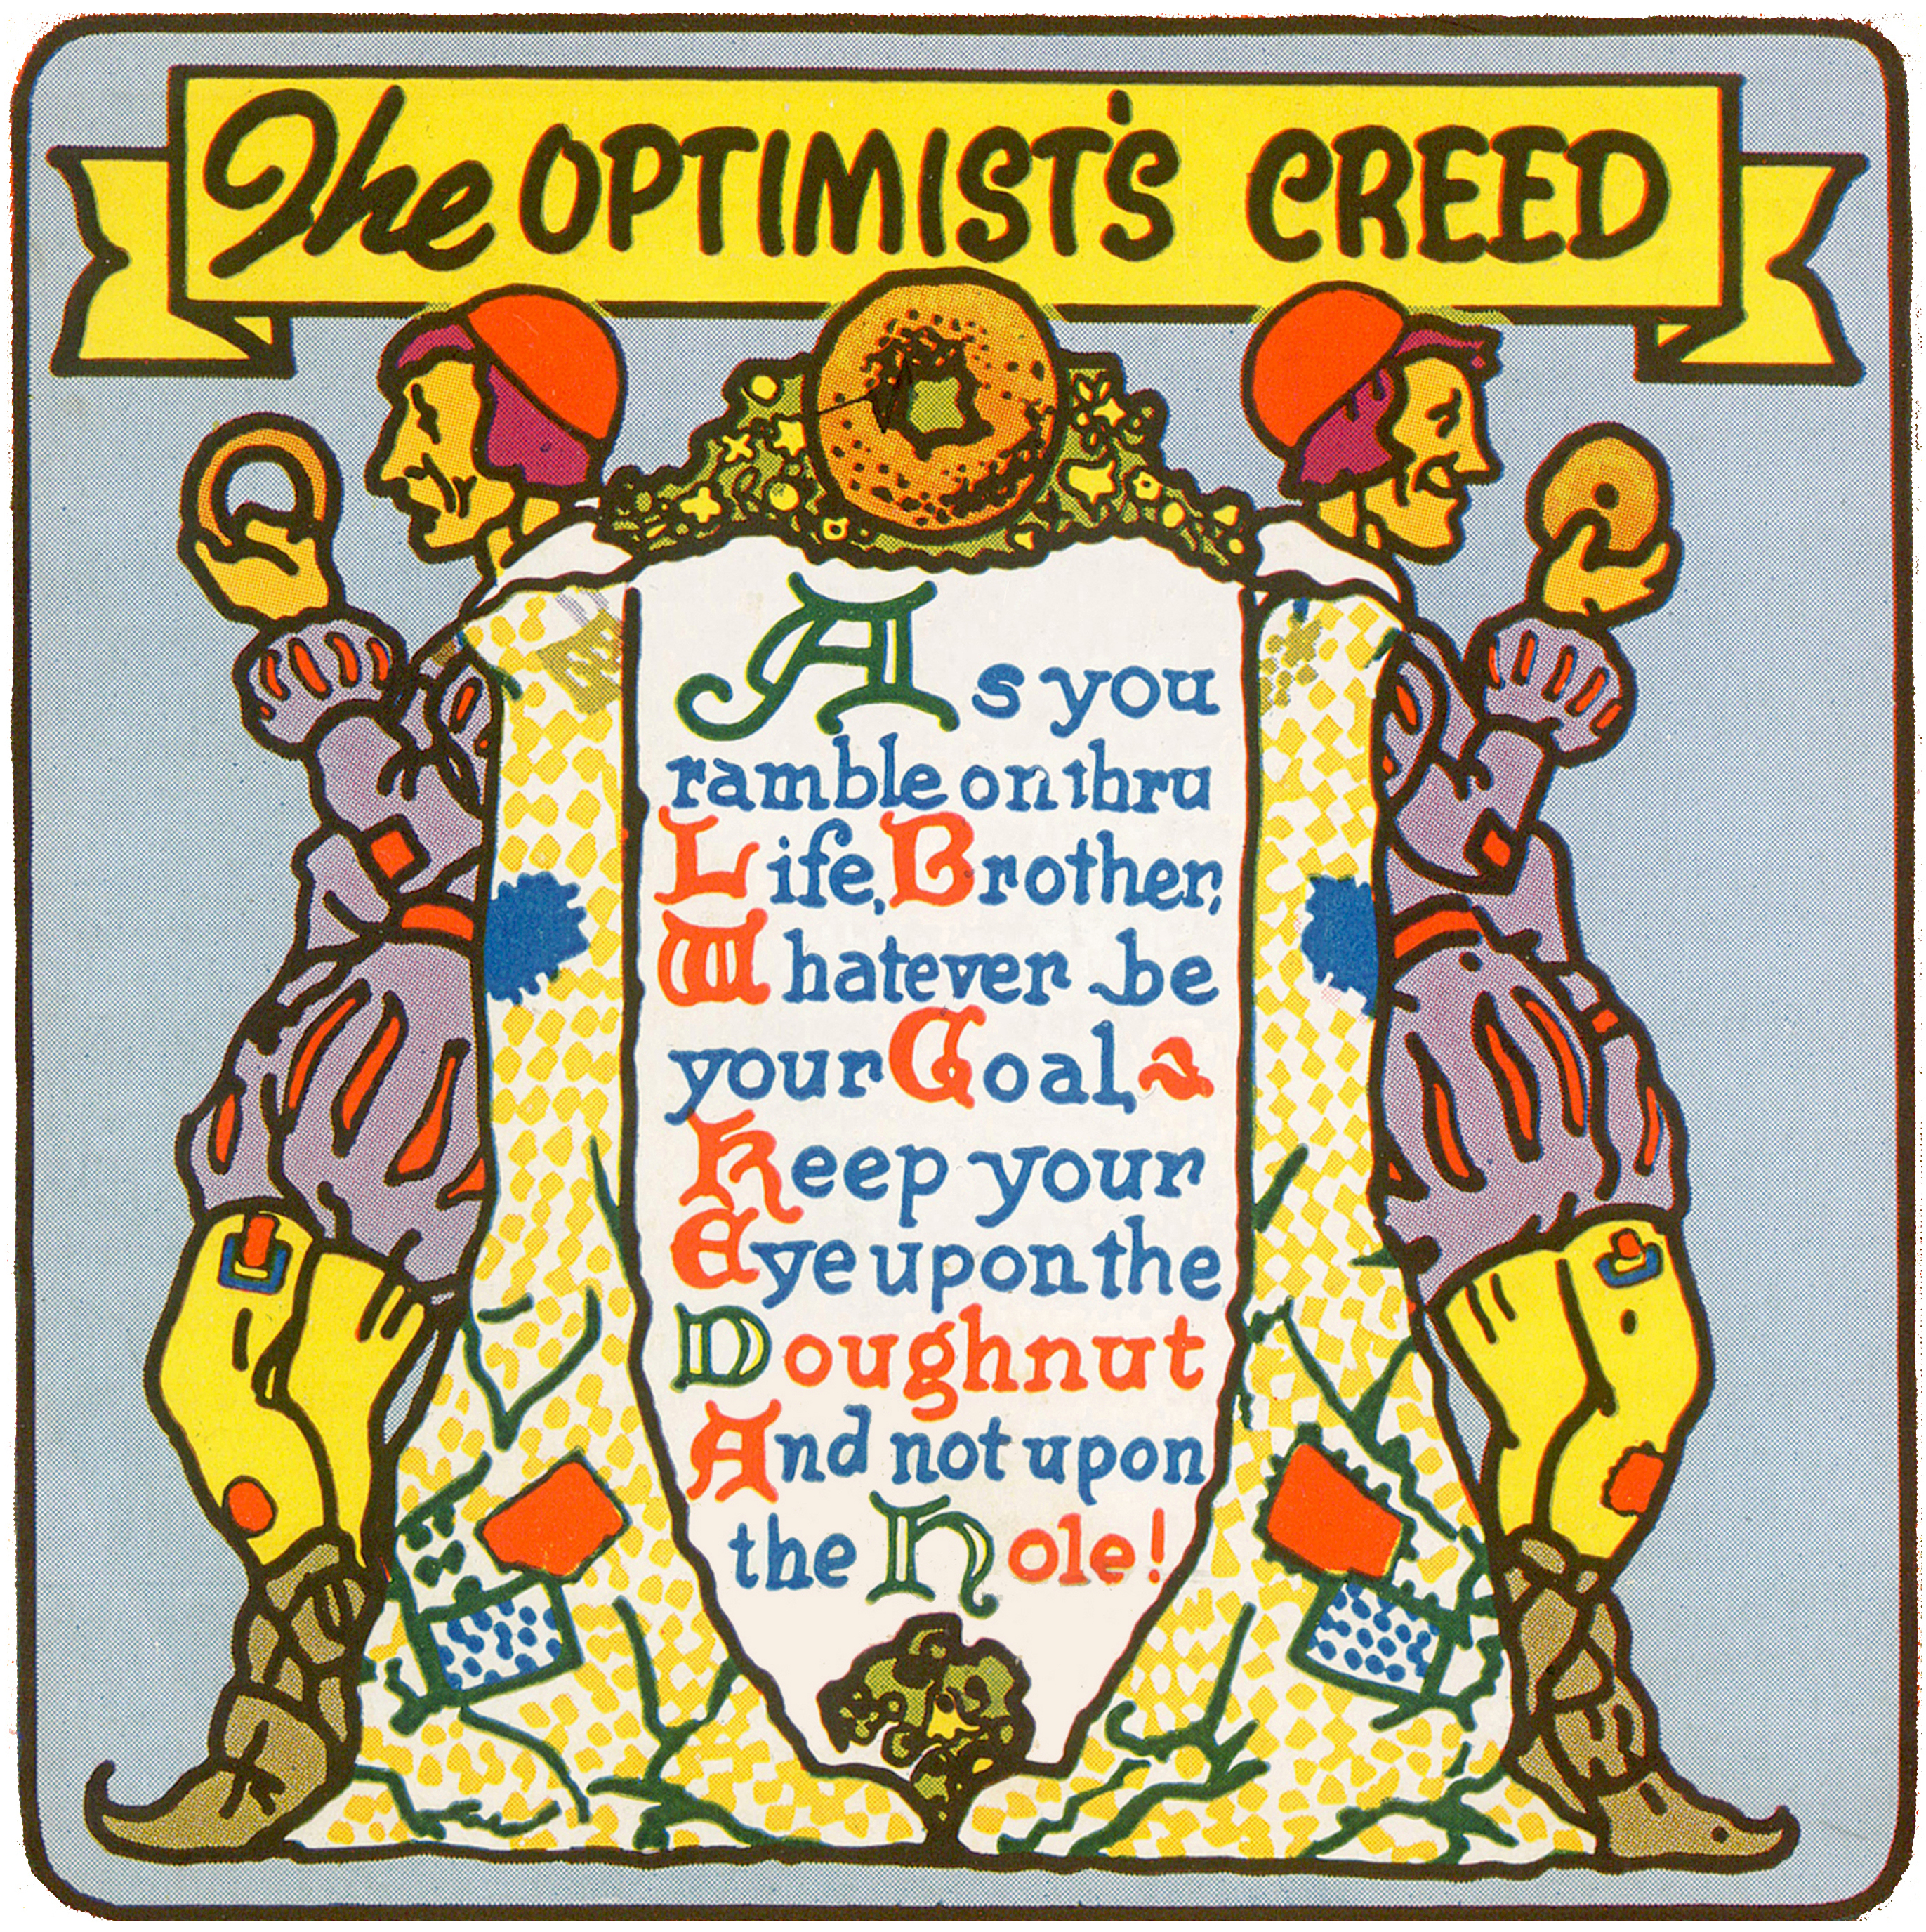 optimists_creed_1939